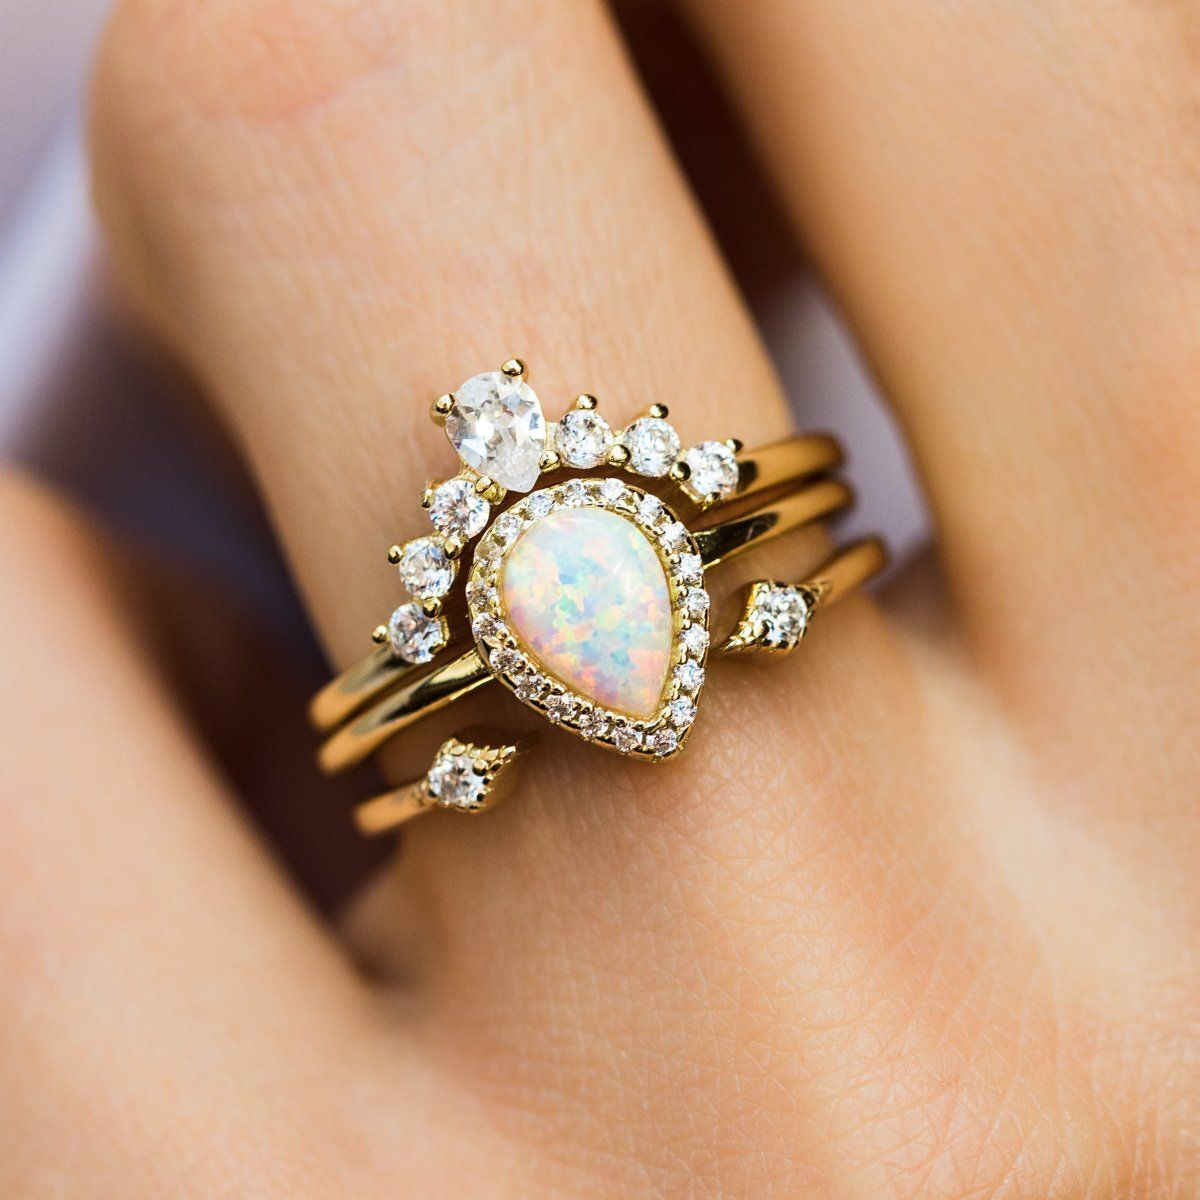 Pear Stacking Ring Set In Gold With White Opal In 2020 Engagement Rings Opal Opal Wedding Rings 14k White Gold Engagement Rings